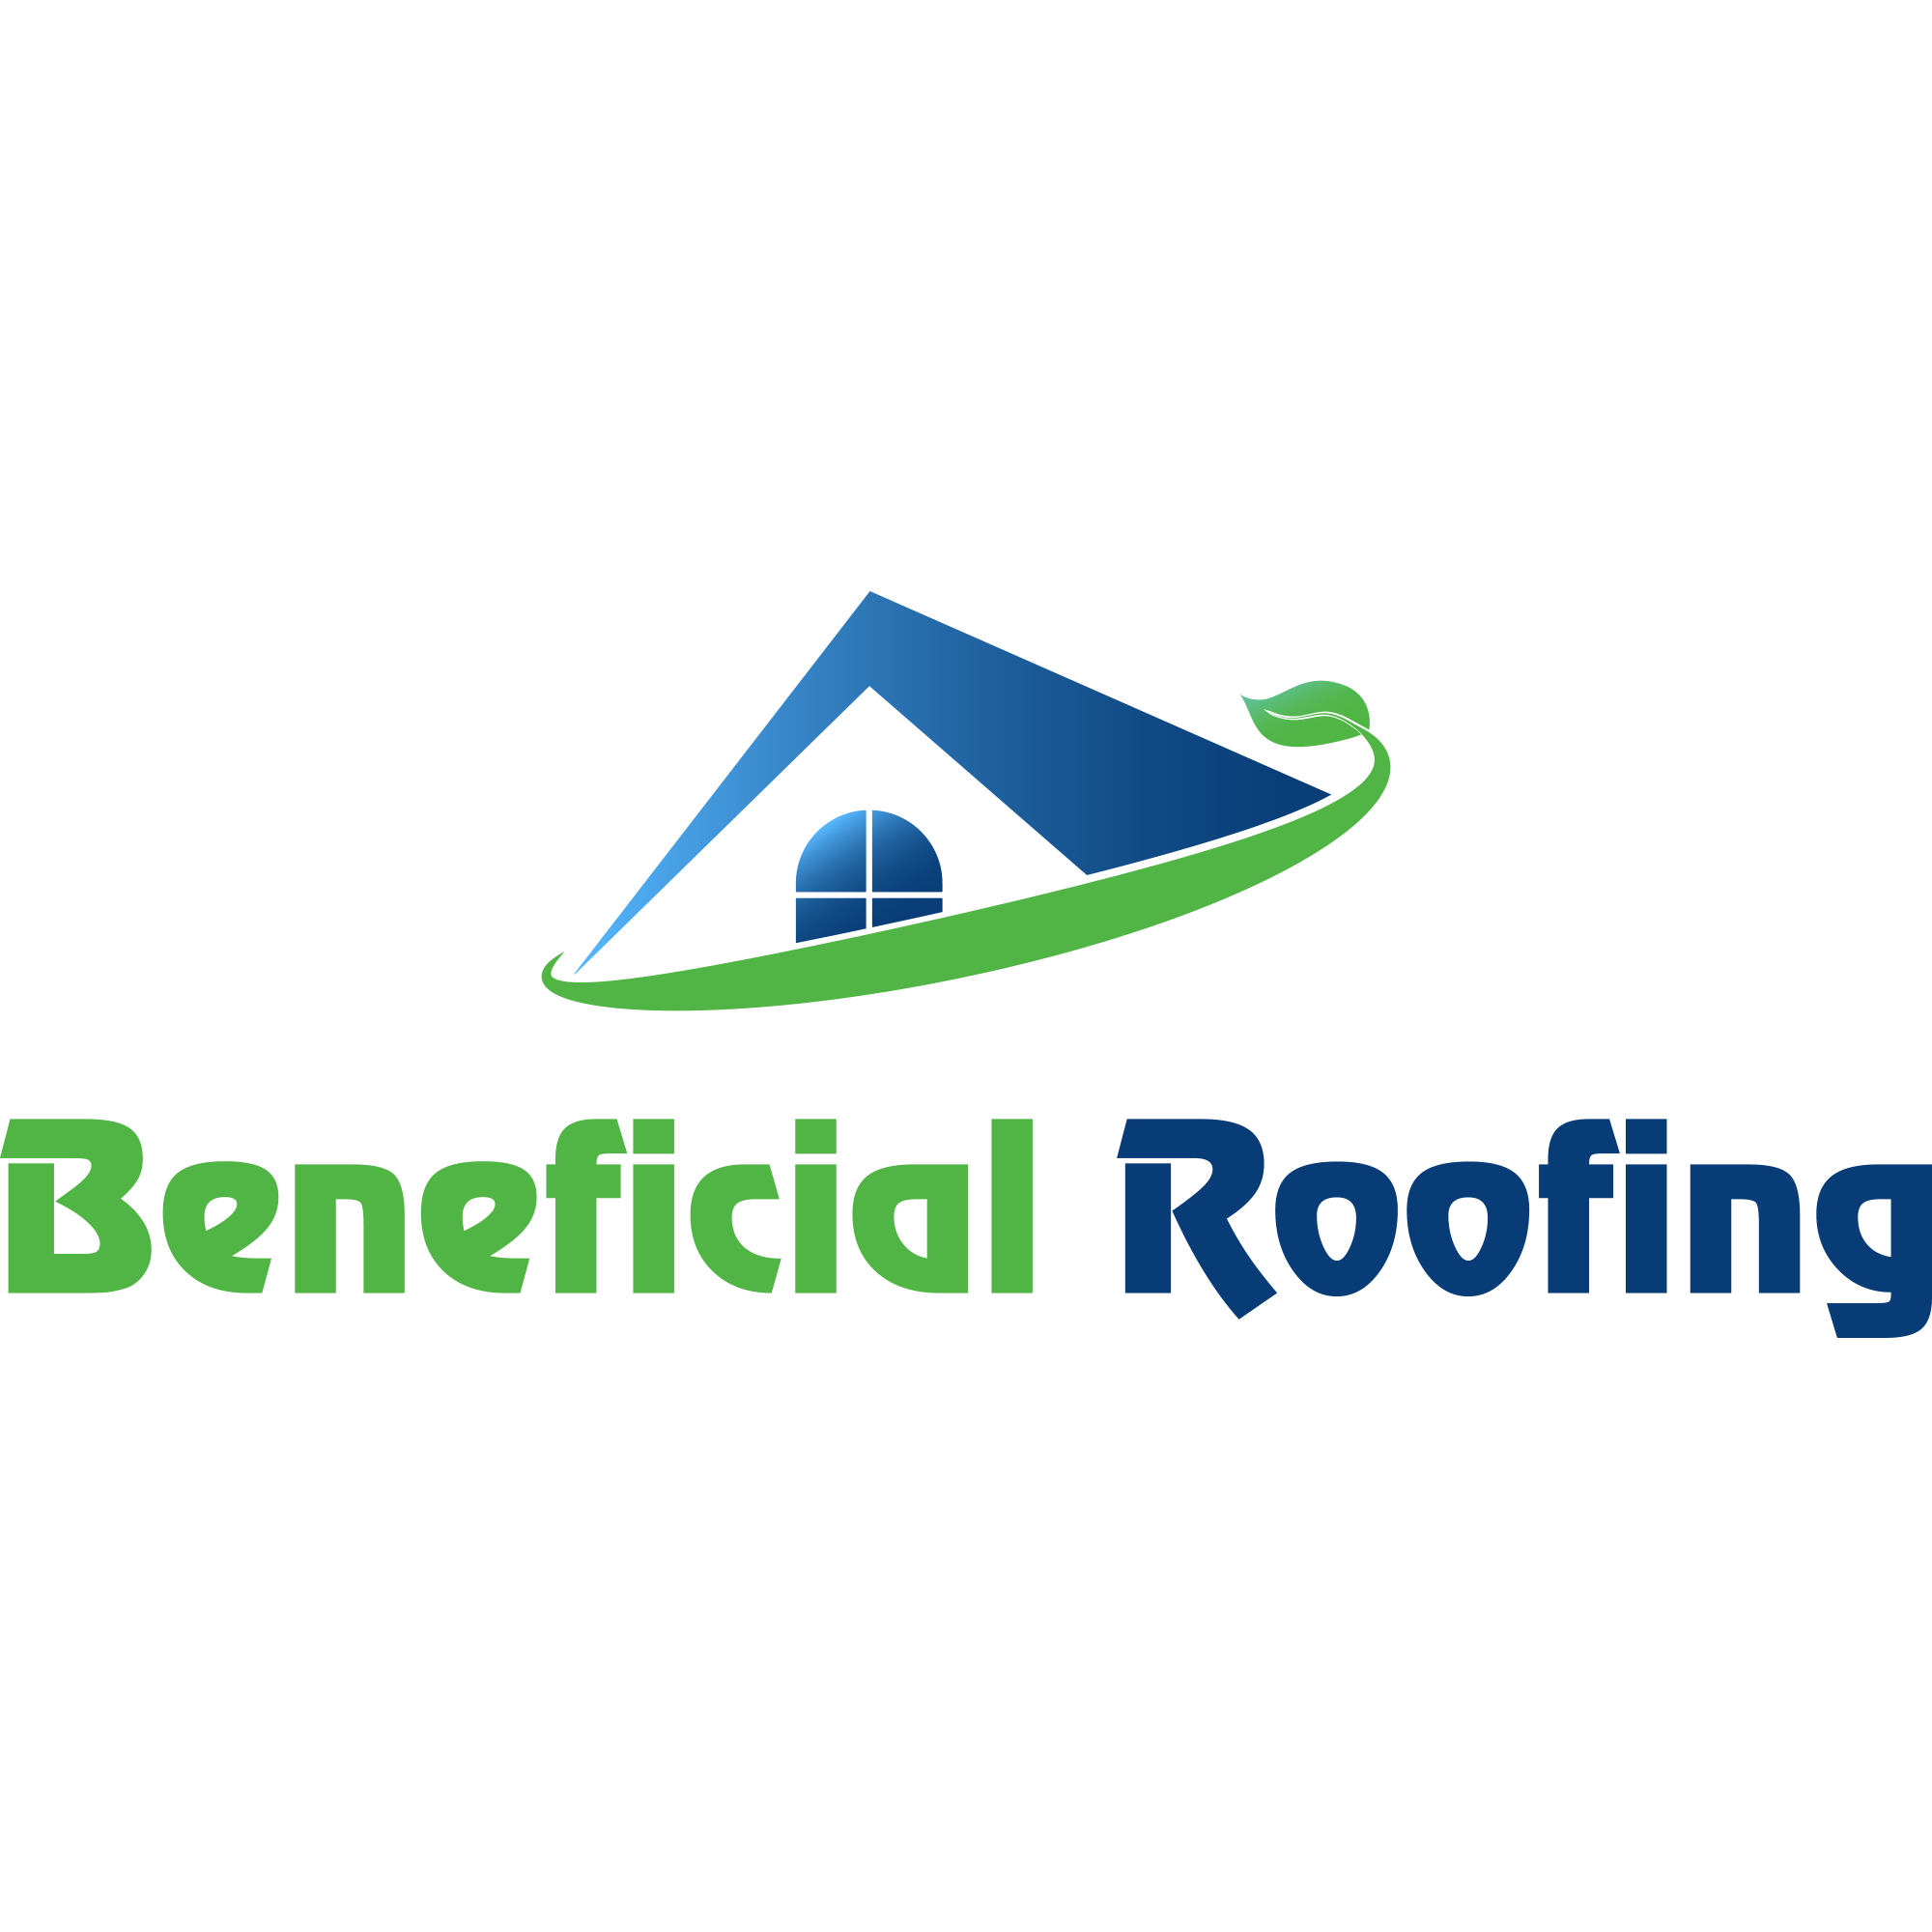 Beneficial Roofing of Knoxville TN